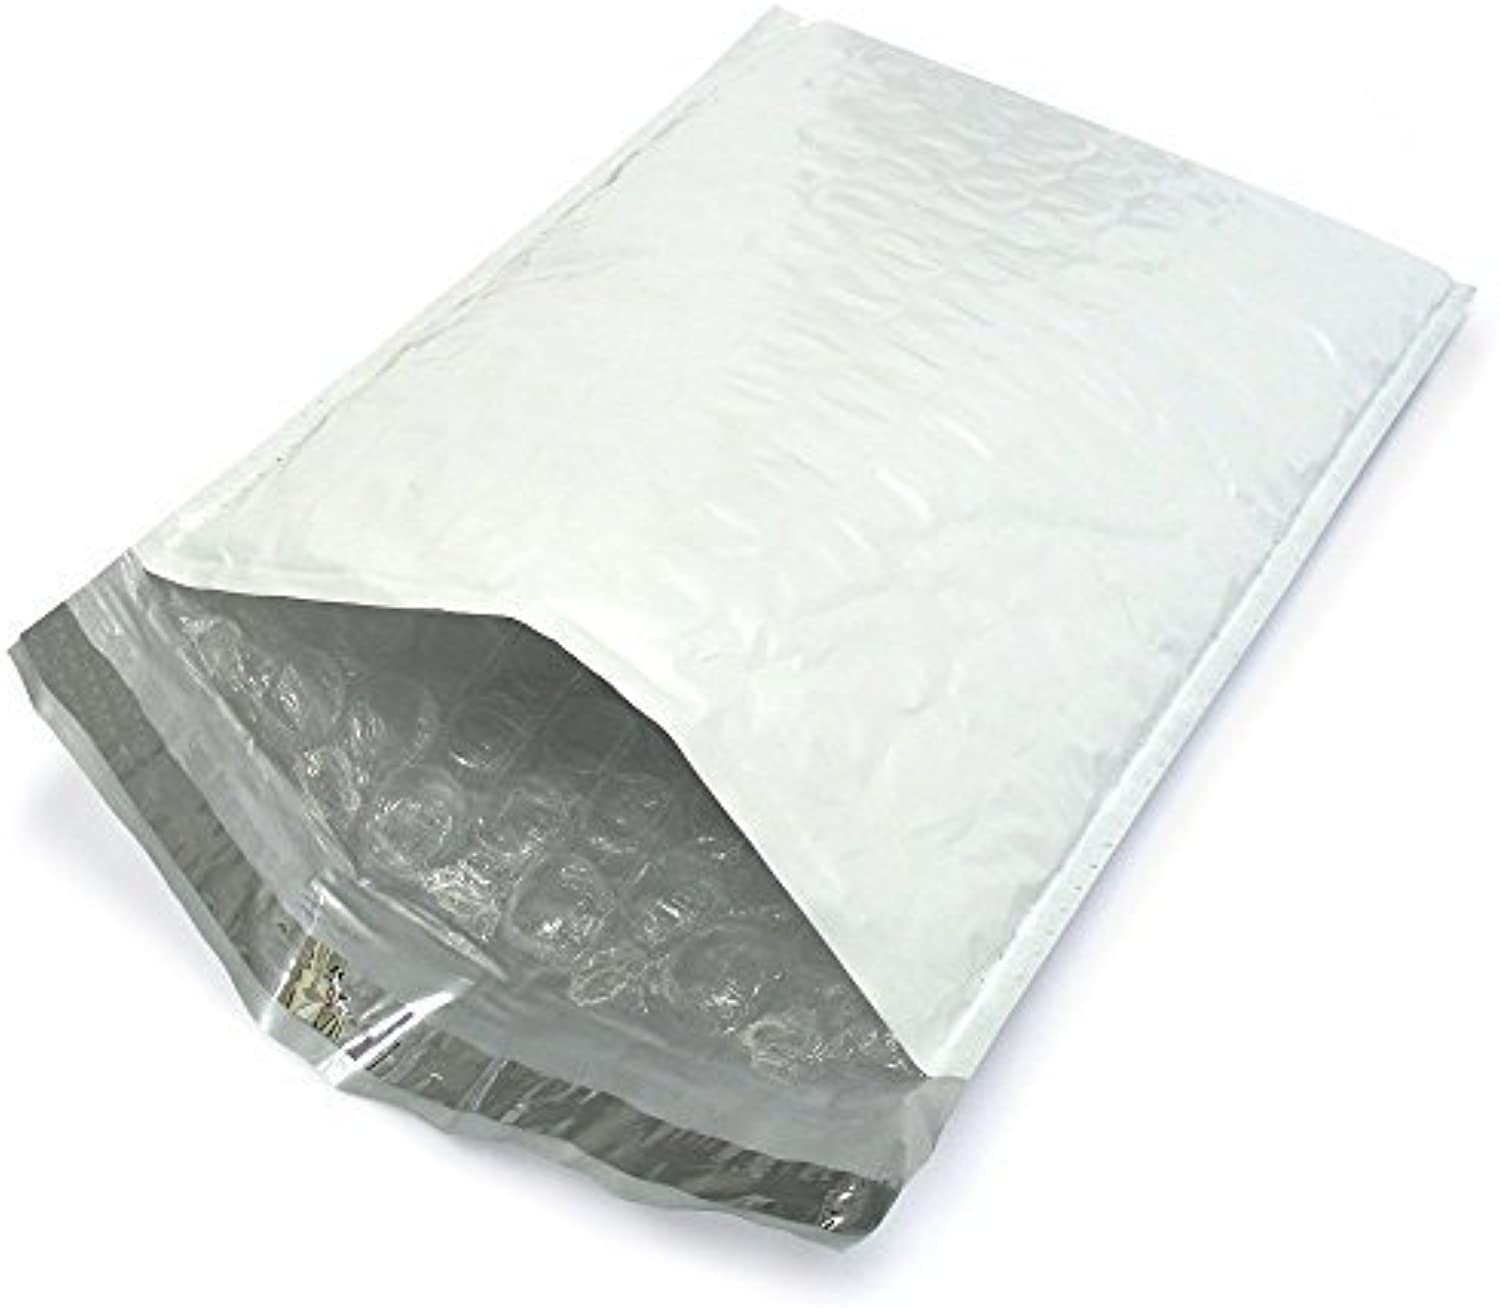 000 4x8  POLY BUBBLE MAILER PADDED ENVELOPES-500ct by GE Distribution B0141NIWM4    | Große Auswahl